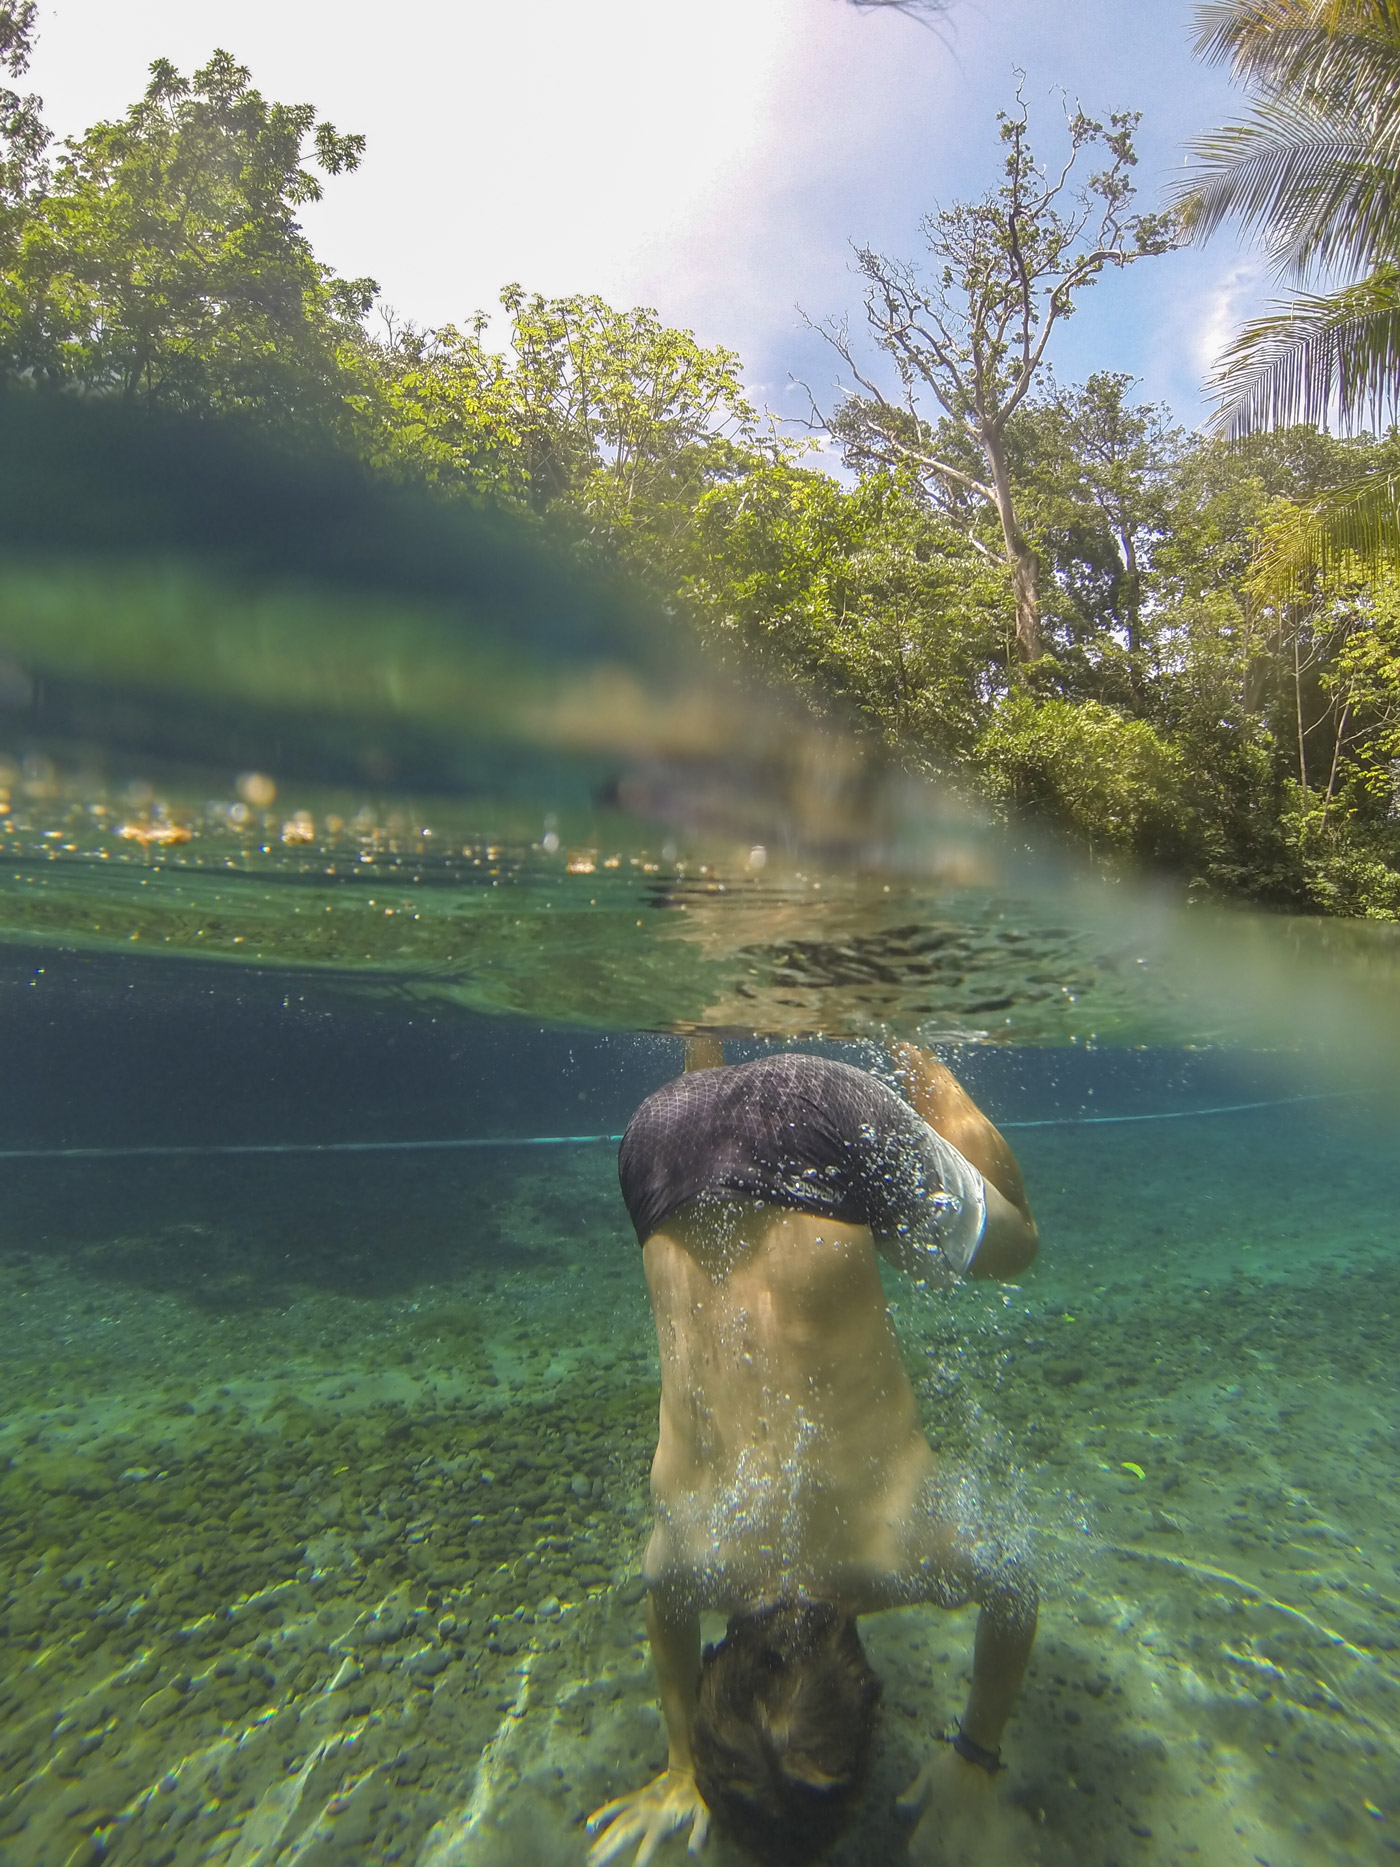 Me setting up for a handstand in the clear water